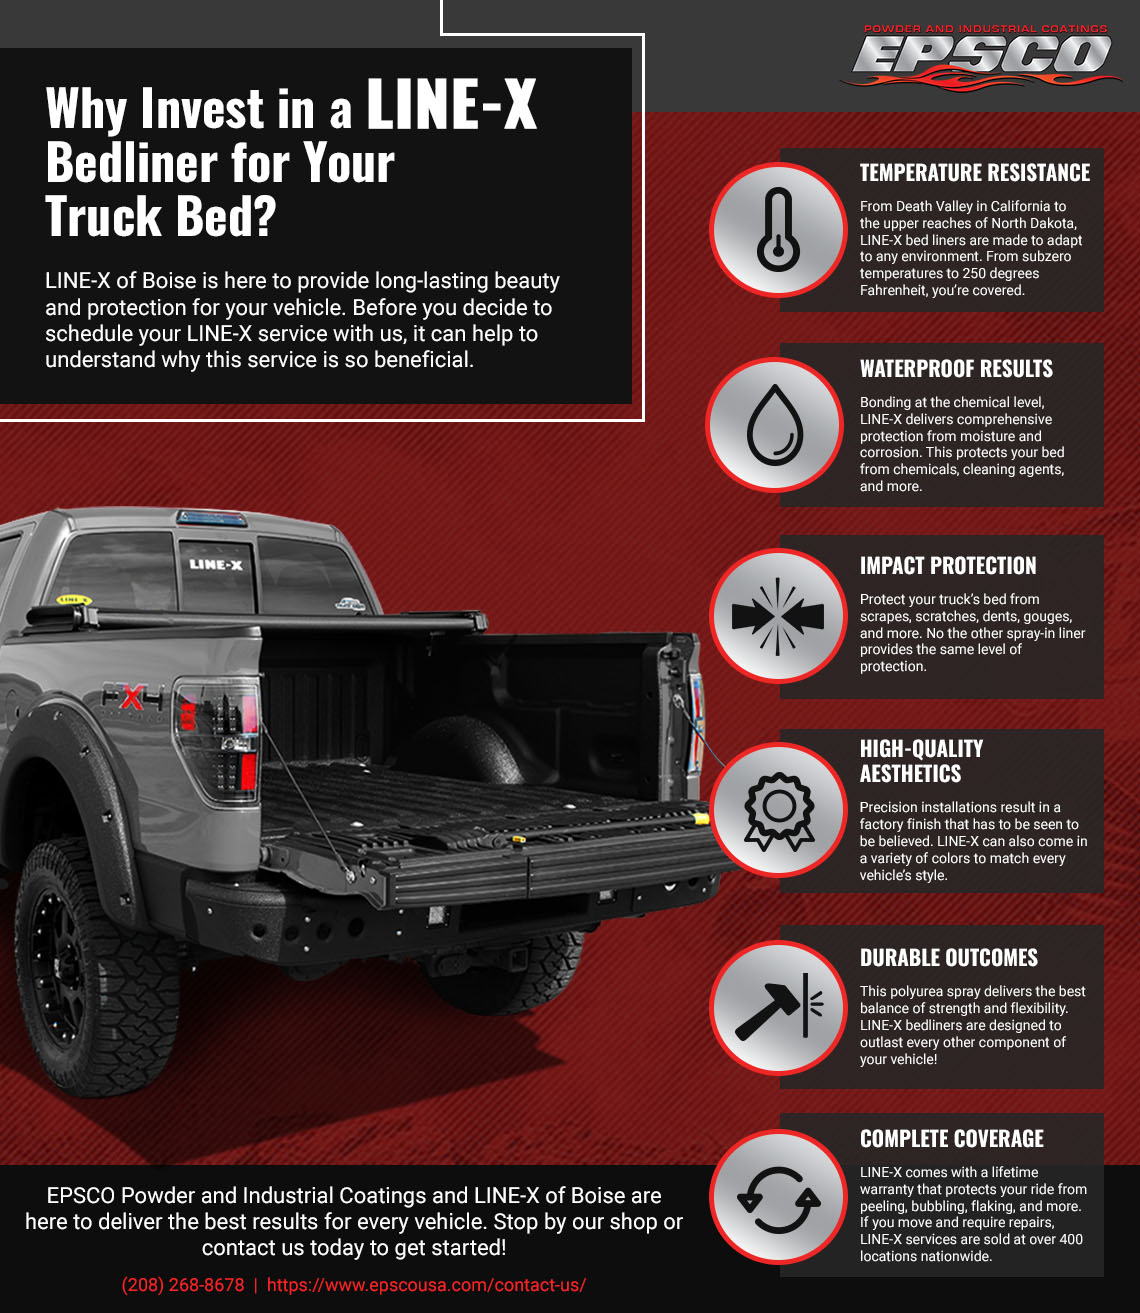 LINE-X Boise: Why Invest In LINE-X For Your Truck Bed? The